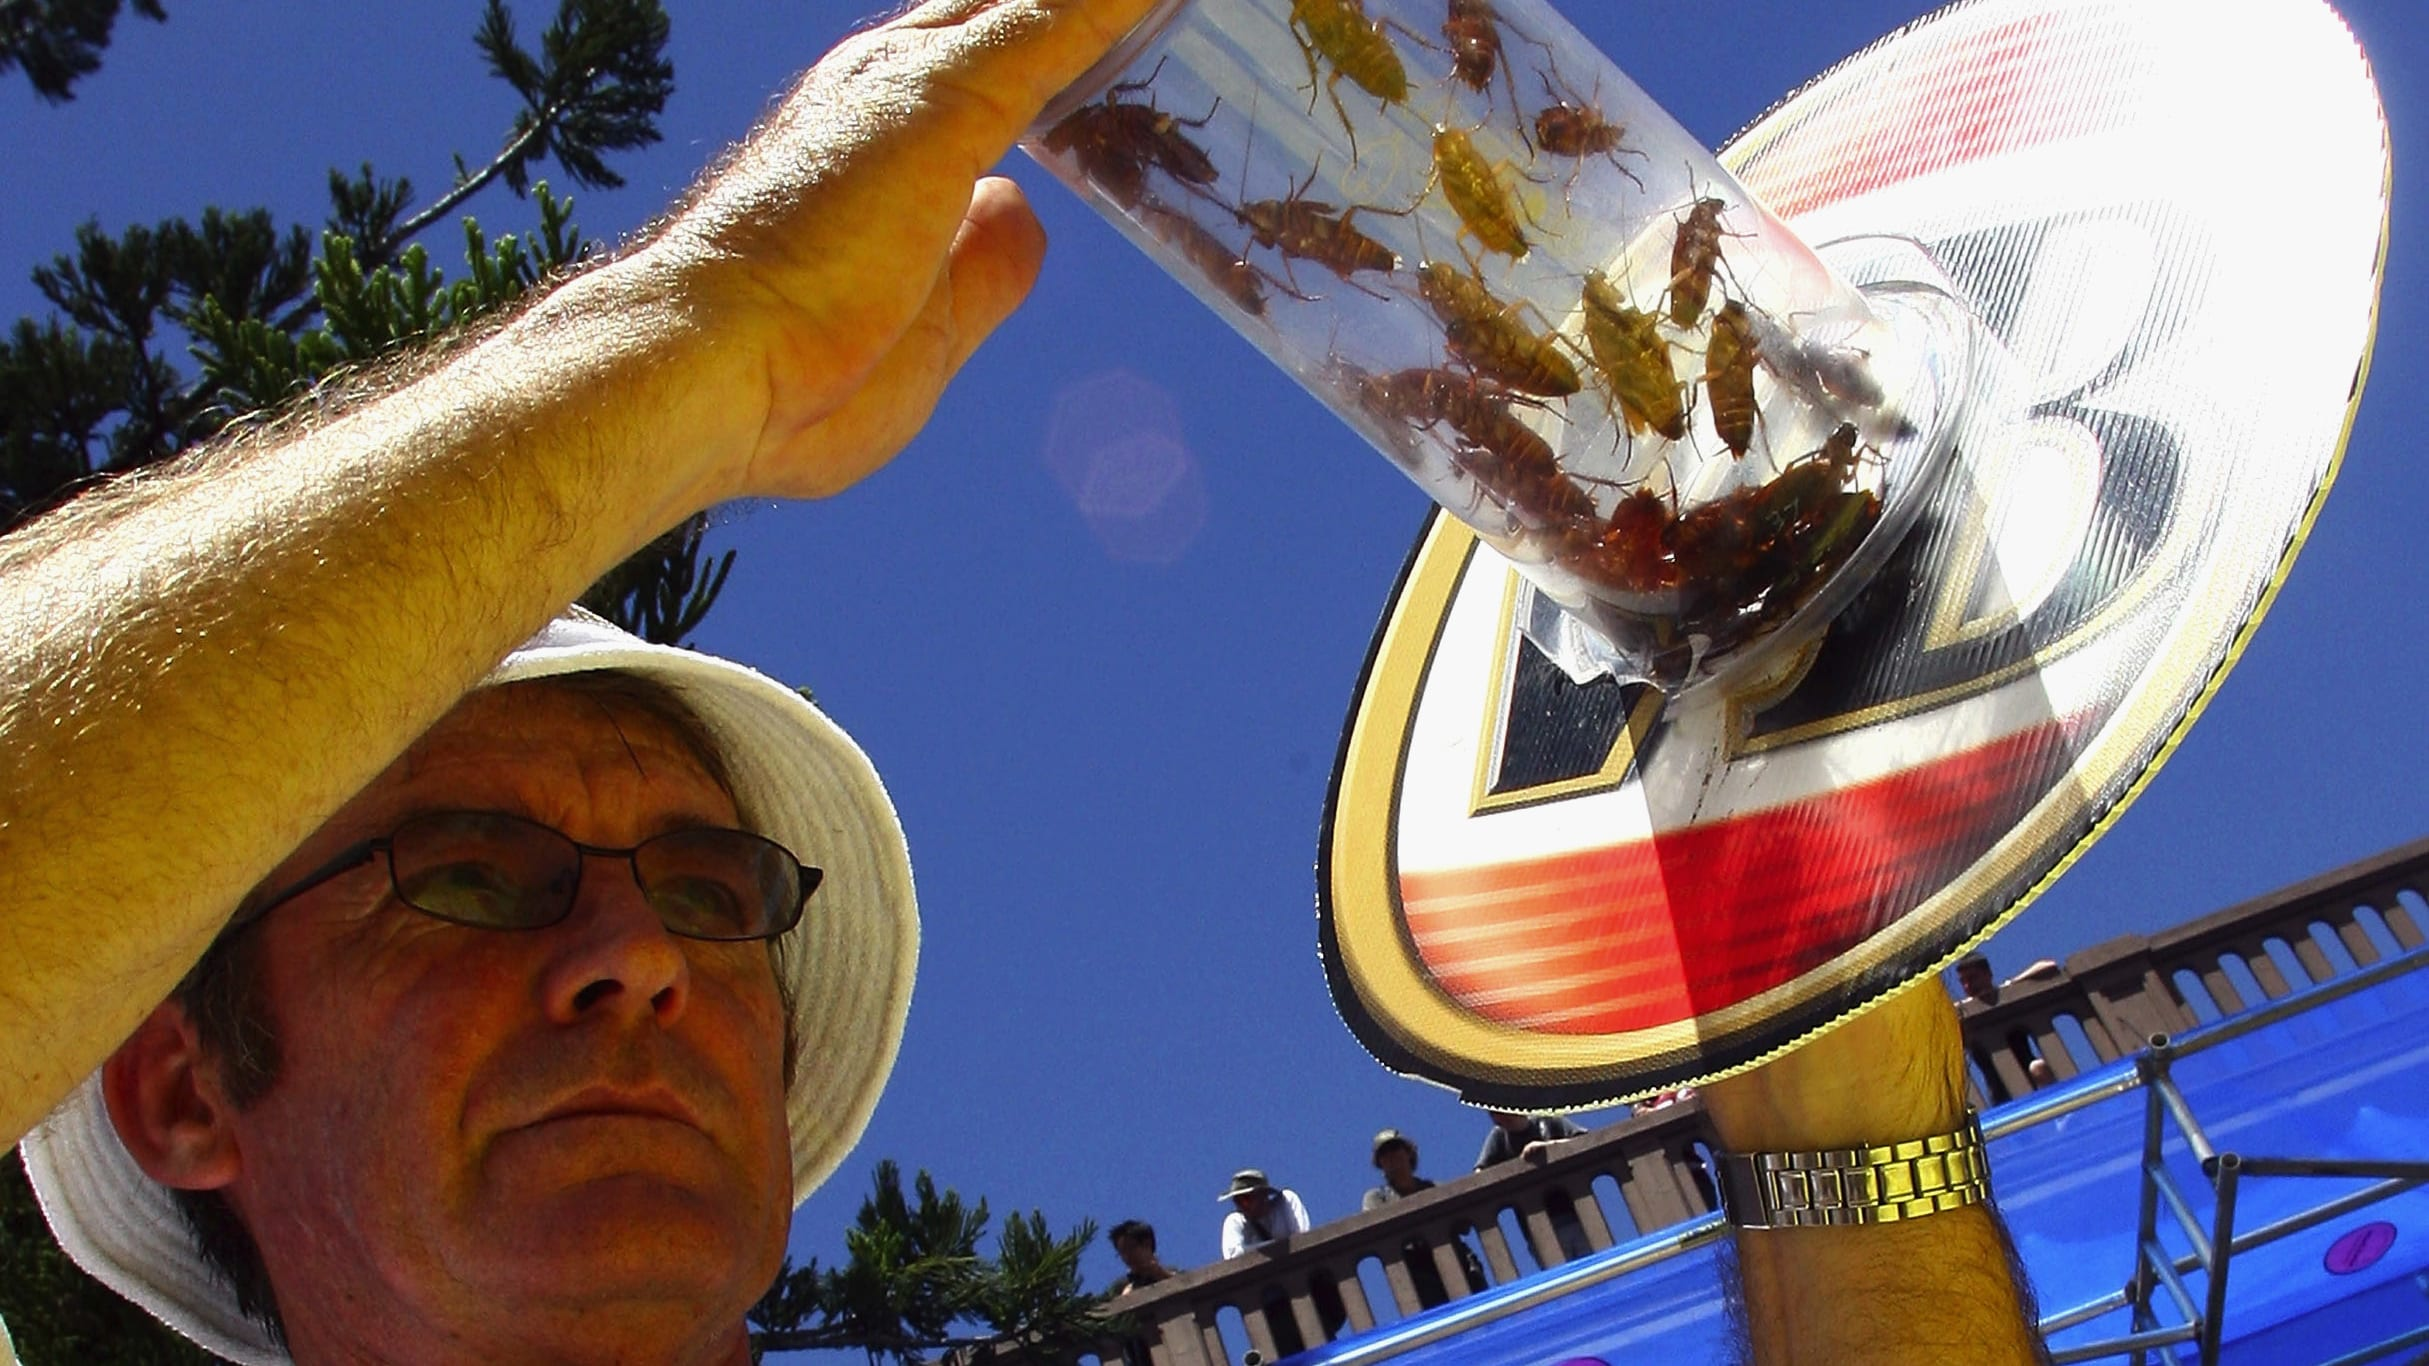 BRISBANE, AUSTRALIA - JANUARY 26:  A steward holds up the cockroaches shortly before the start of the race during the Australia Day World Championship Cockroach Races at the Story Bridge Hotel on January 26, 2008 in Brisbane, Australia.  (Photo by Bradley Kanaris/Getty Images)